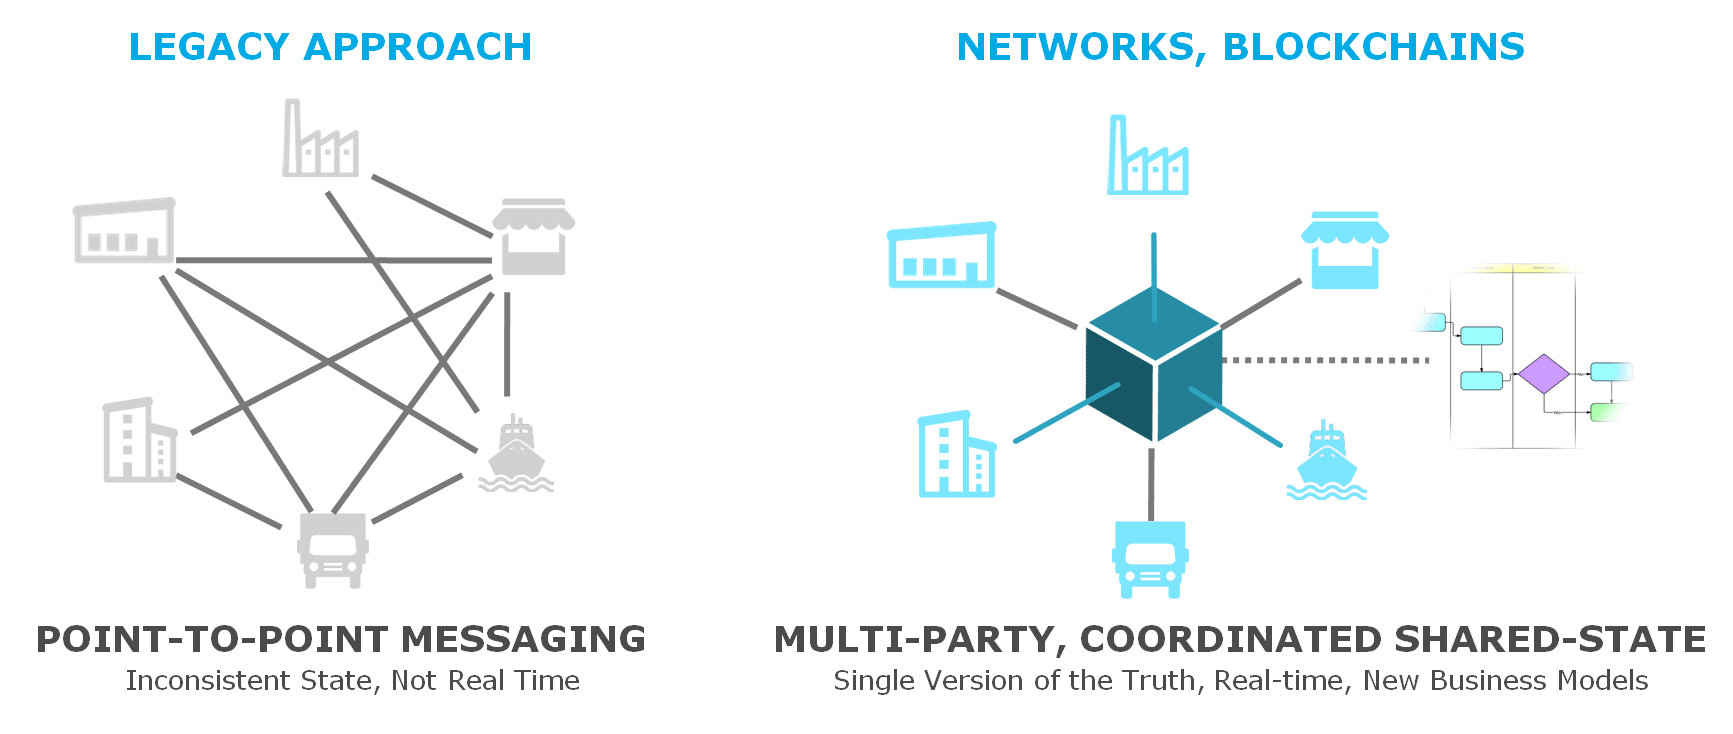 Traditional legacy supply chains versus multi-party networks.